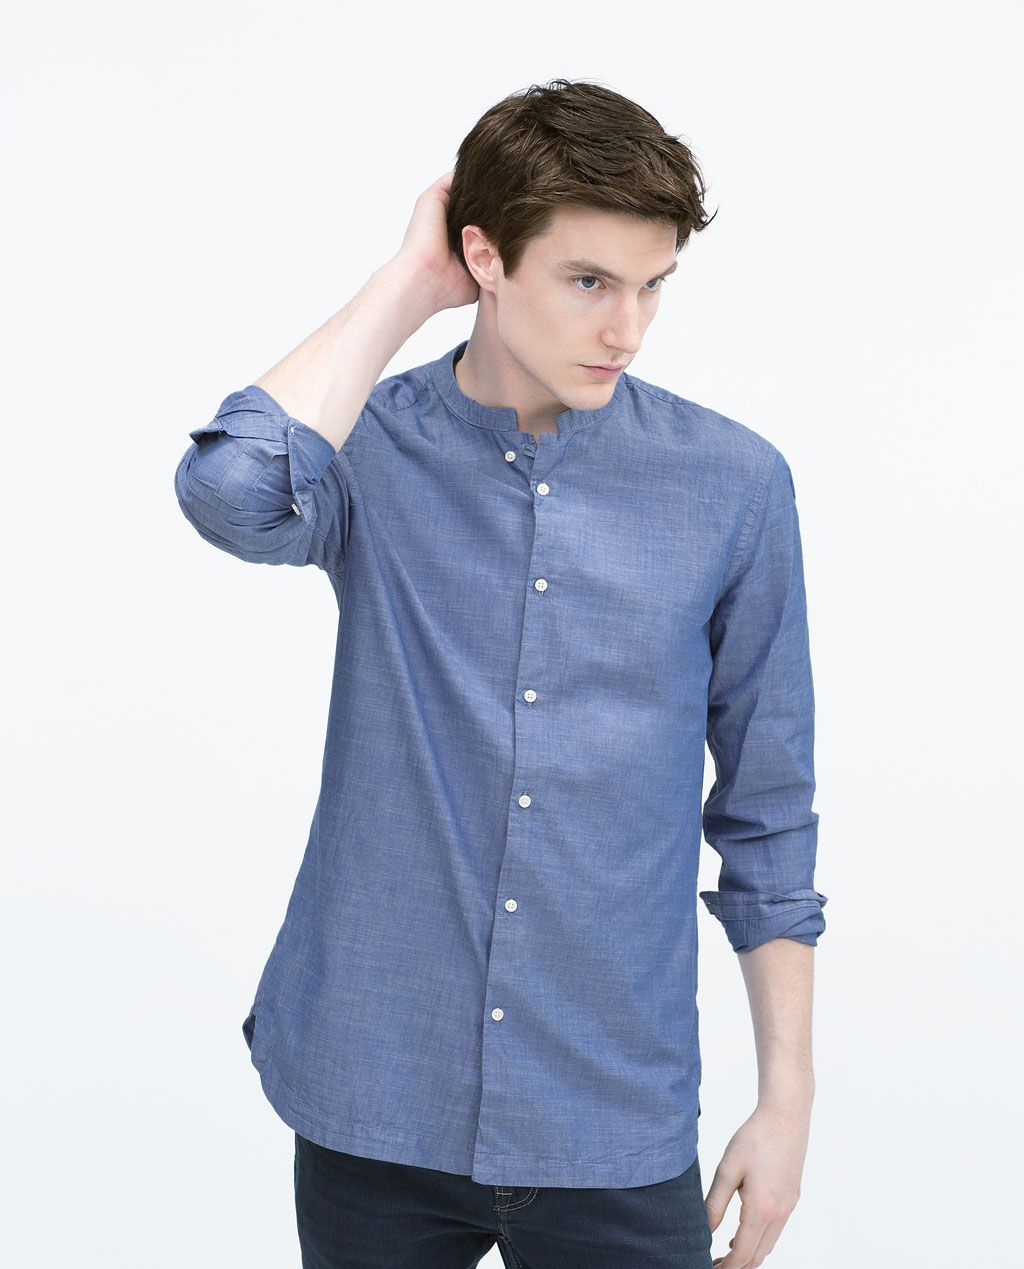 fd1e6641 Image 1 of SLUB SHIRT WITH STAND COLLAR from Zara | // M-E-N ...